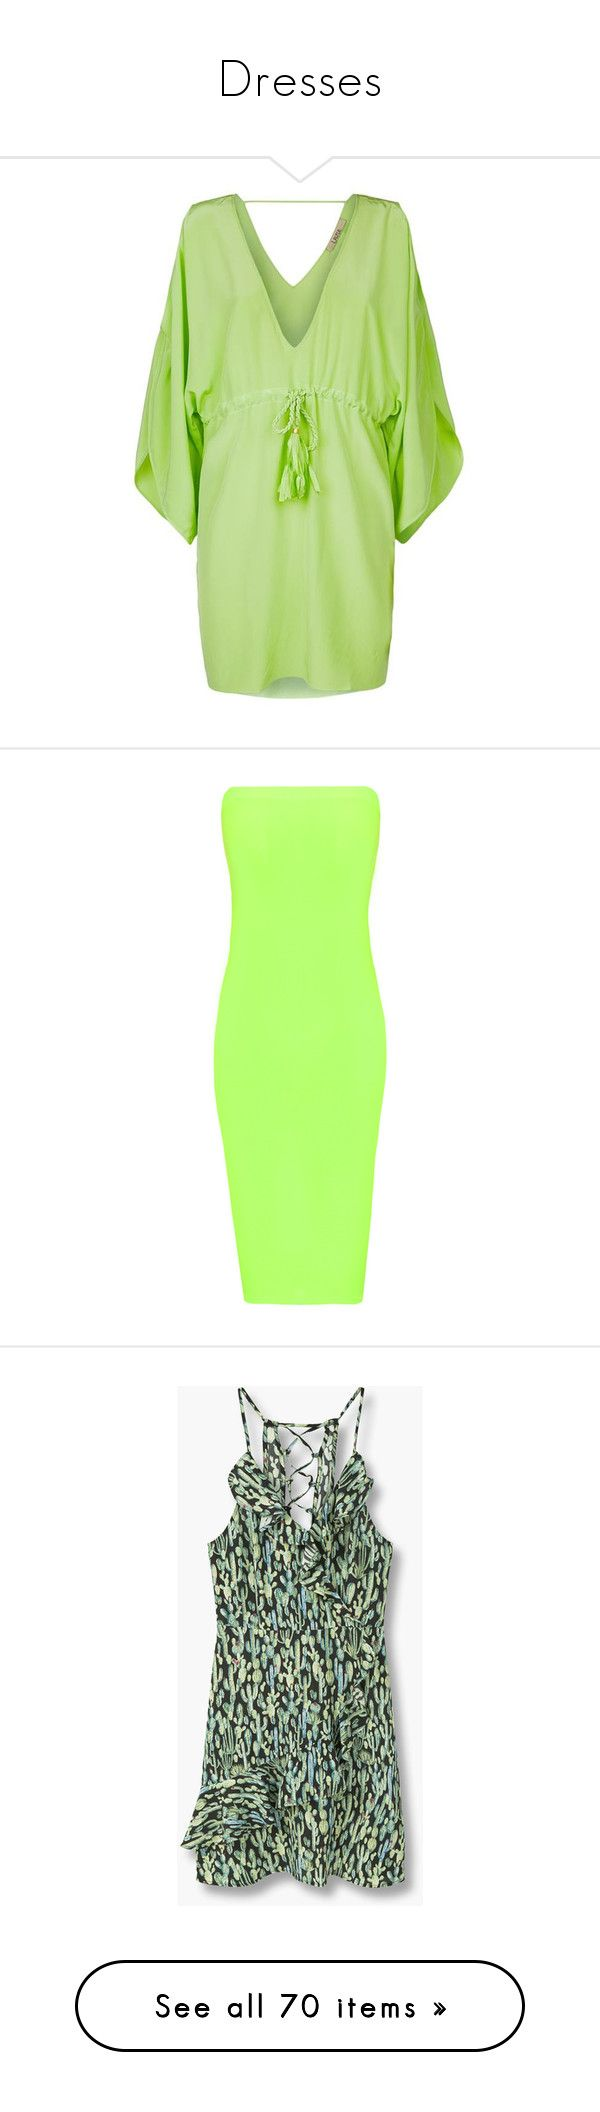 """Dresses"" by skinny-jeannie ❤ liked on Polyvore featuring dresses, open shoulder dress, special occasion dresses, cut-out shoulder dresses, holiday dresses, green cocktail dress, fluorescent green, sleeveless midi dress, neon green dress and bandeau midi dress"